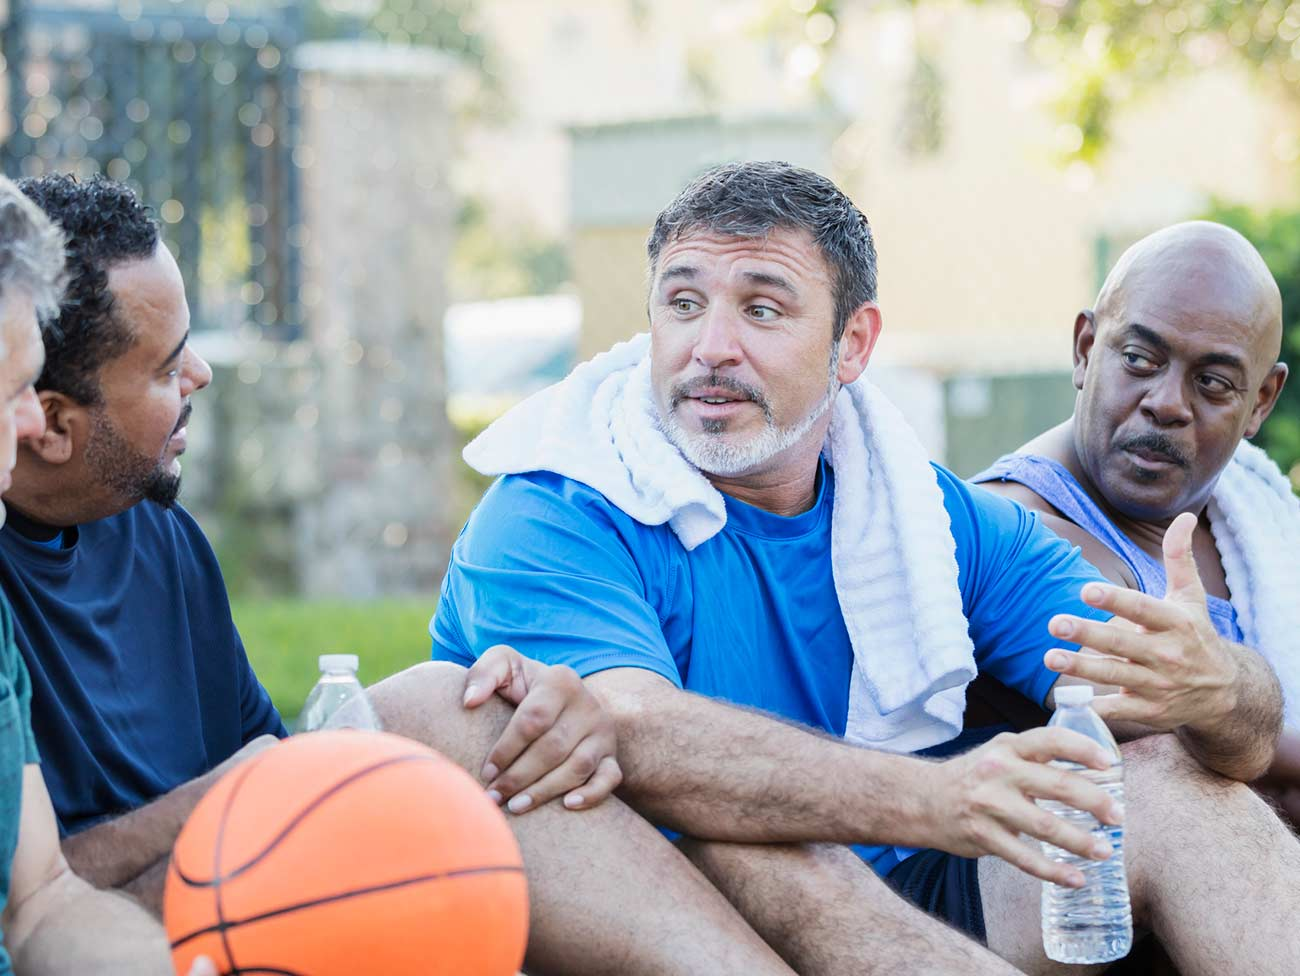 4 men on an outdoor basketball court sitting and talking